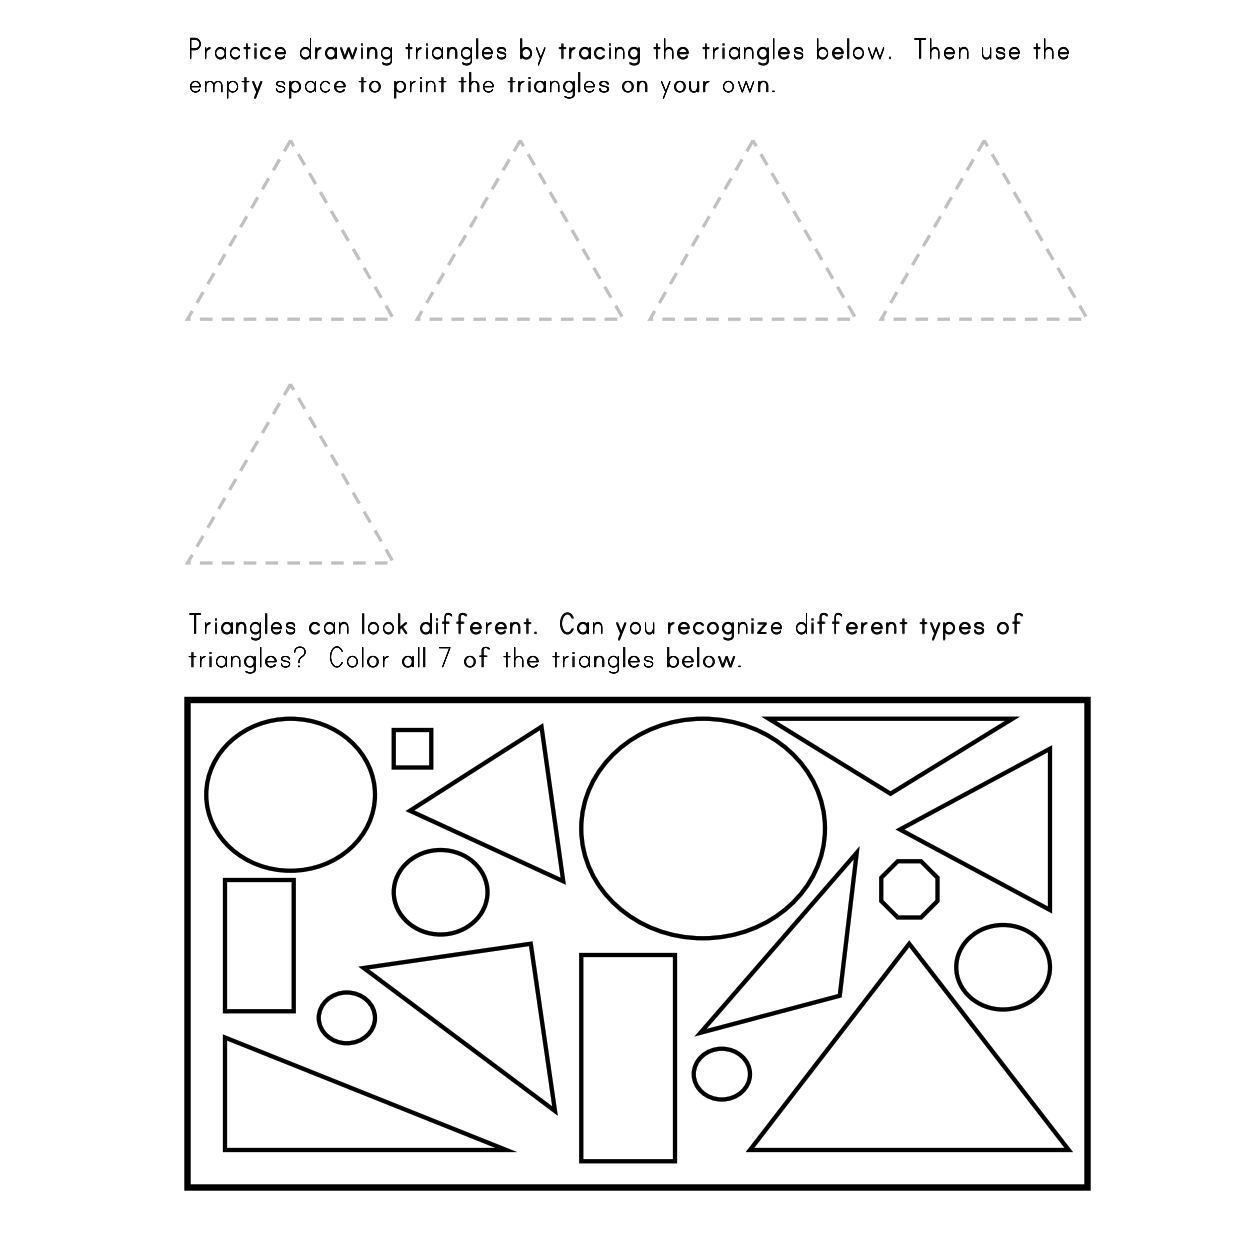 worksheet Soil Texture Triangle Worksheet types of triangles worksheet four quadrant graphs empowering new ideas education to upbring the child may 2010 triangle 05